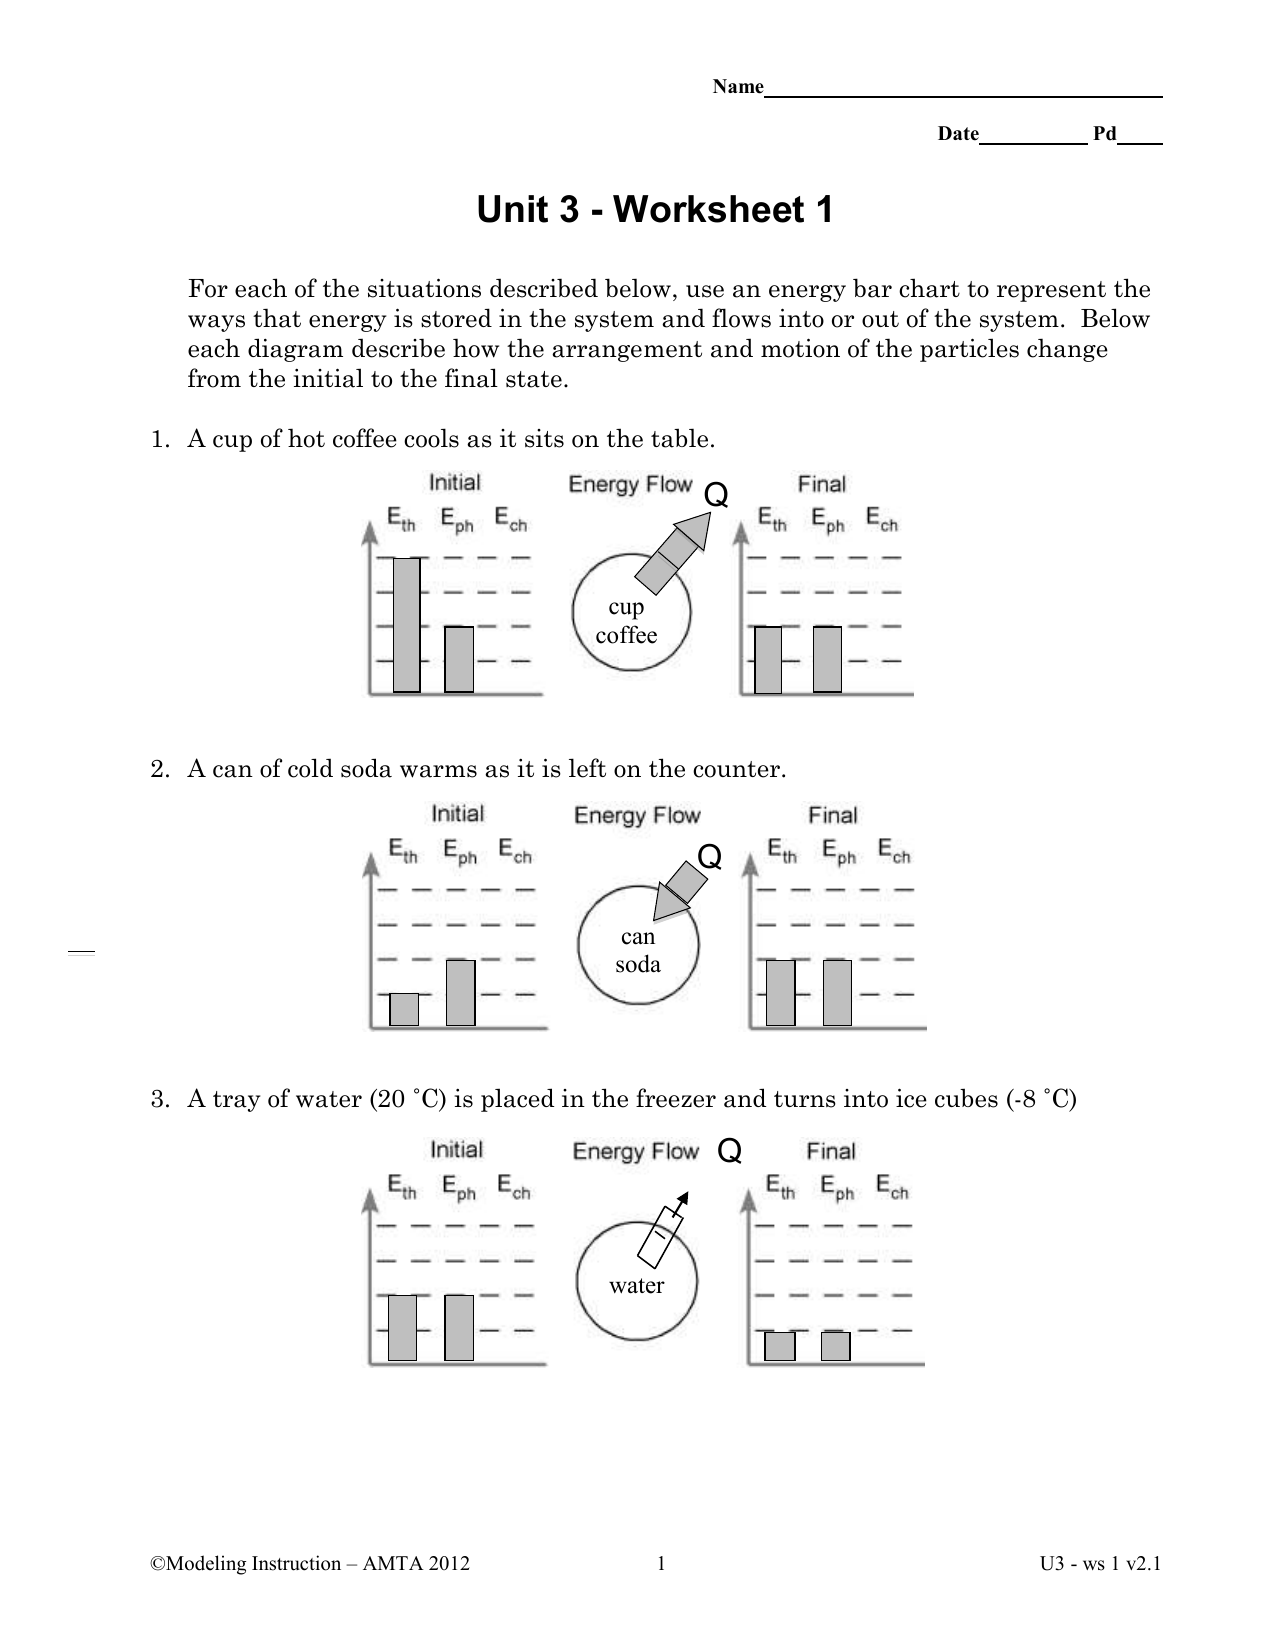 Worksheet  Chemistry Unit 1 Worksheet 3  Worksheet Fun